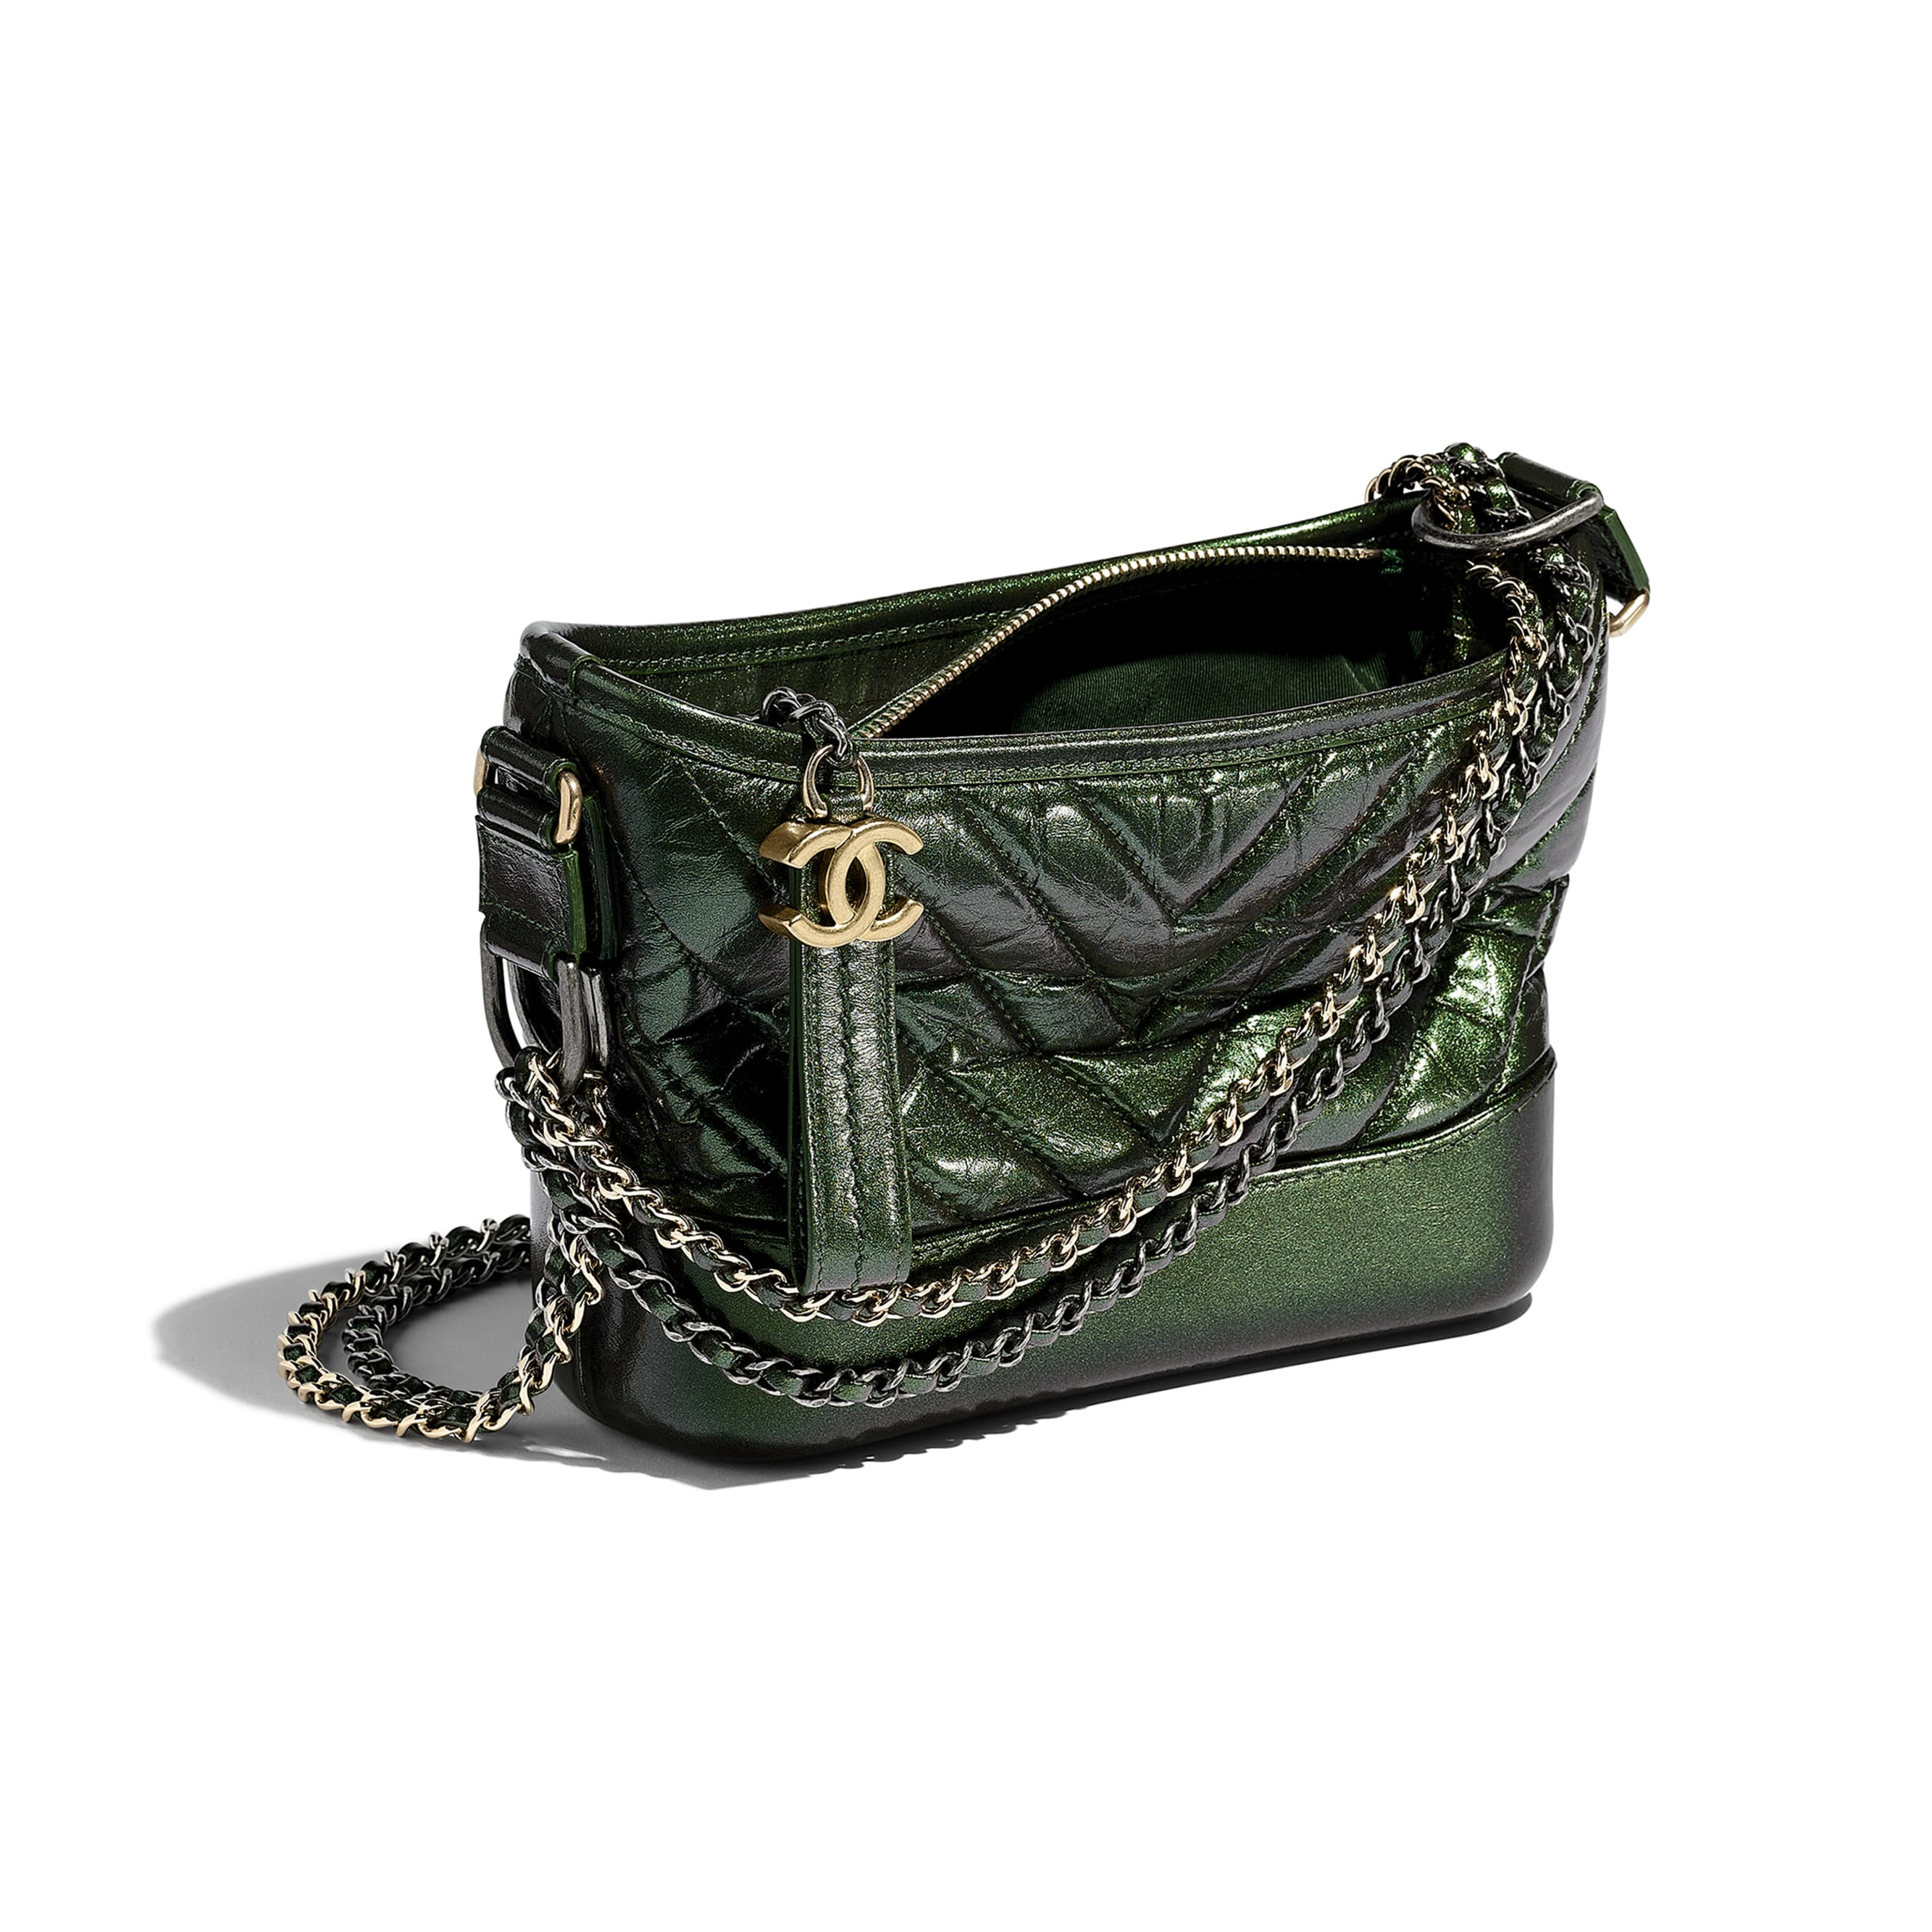 CHANEL'S GABRIELLE Small Hobo Bag - Green - Aged Calfskin, Silver-Tone & Gold-Tone Metal - Other view - see standard sized version